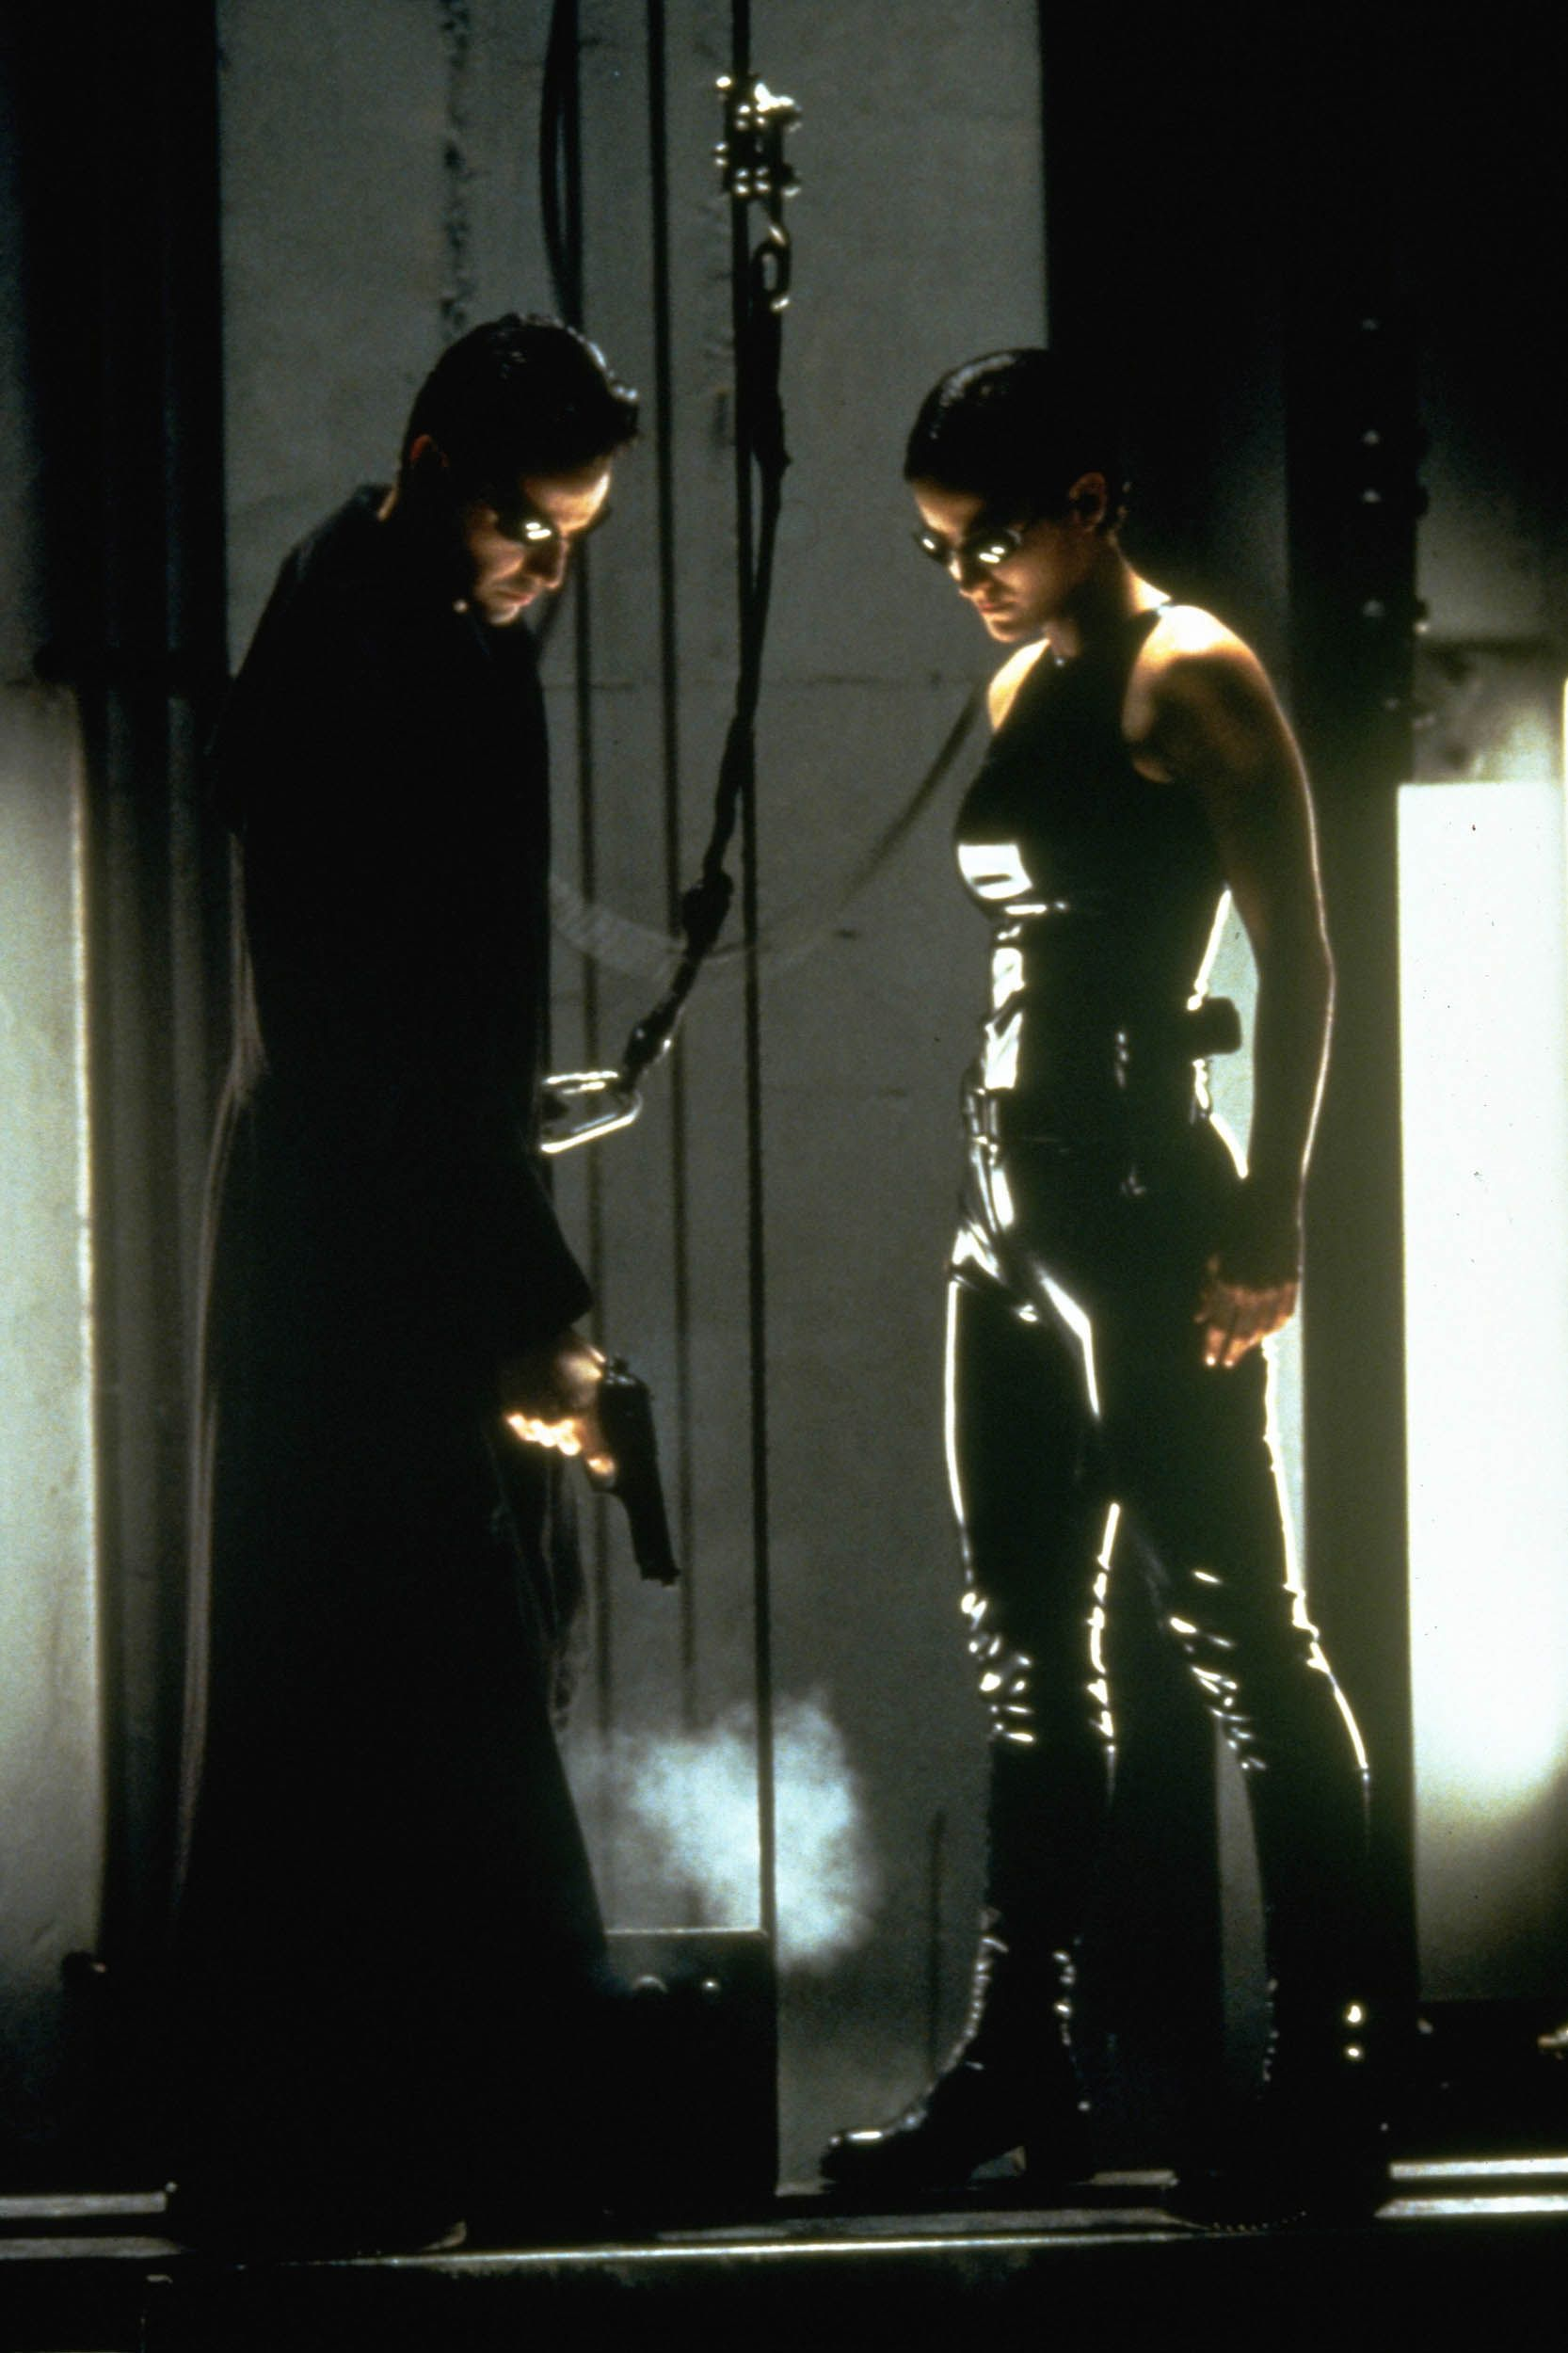 Keanu Reeves and Carrie-Anne Moss in the 1999 film The Matrix.